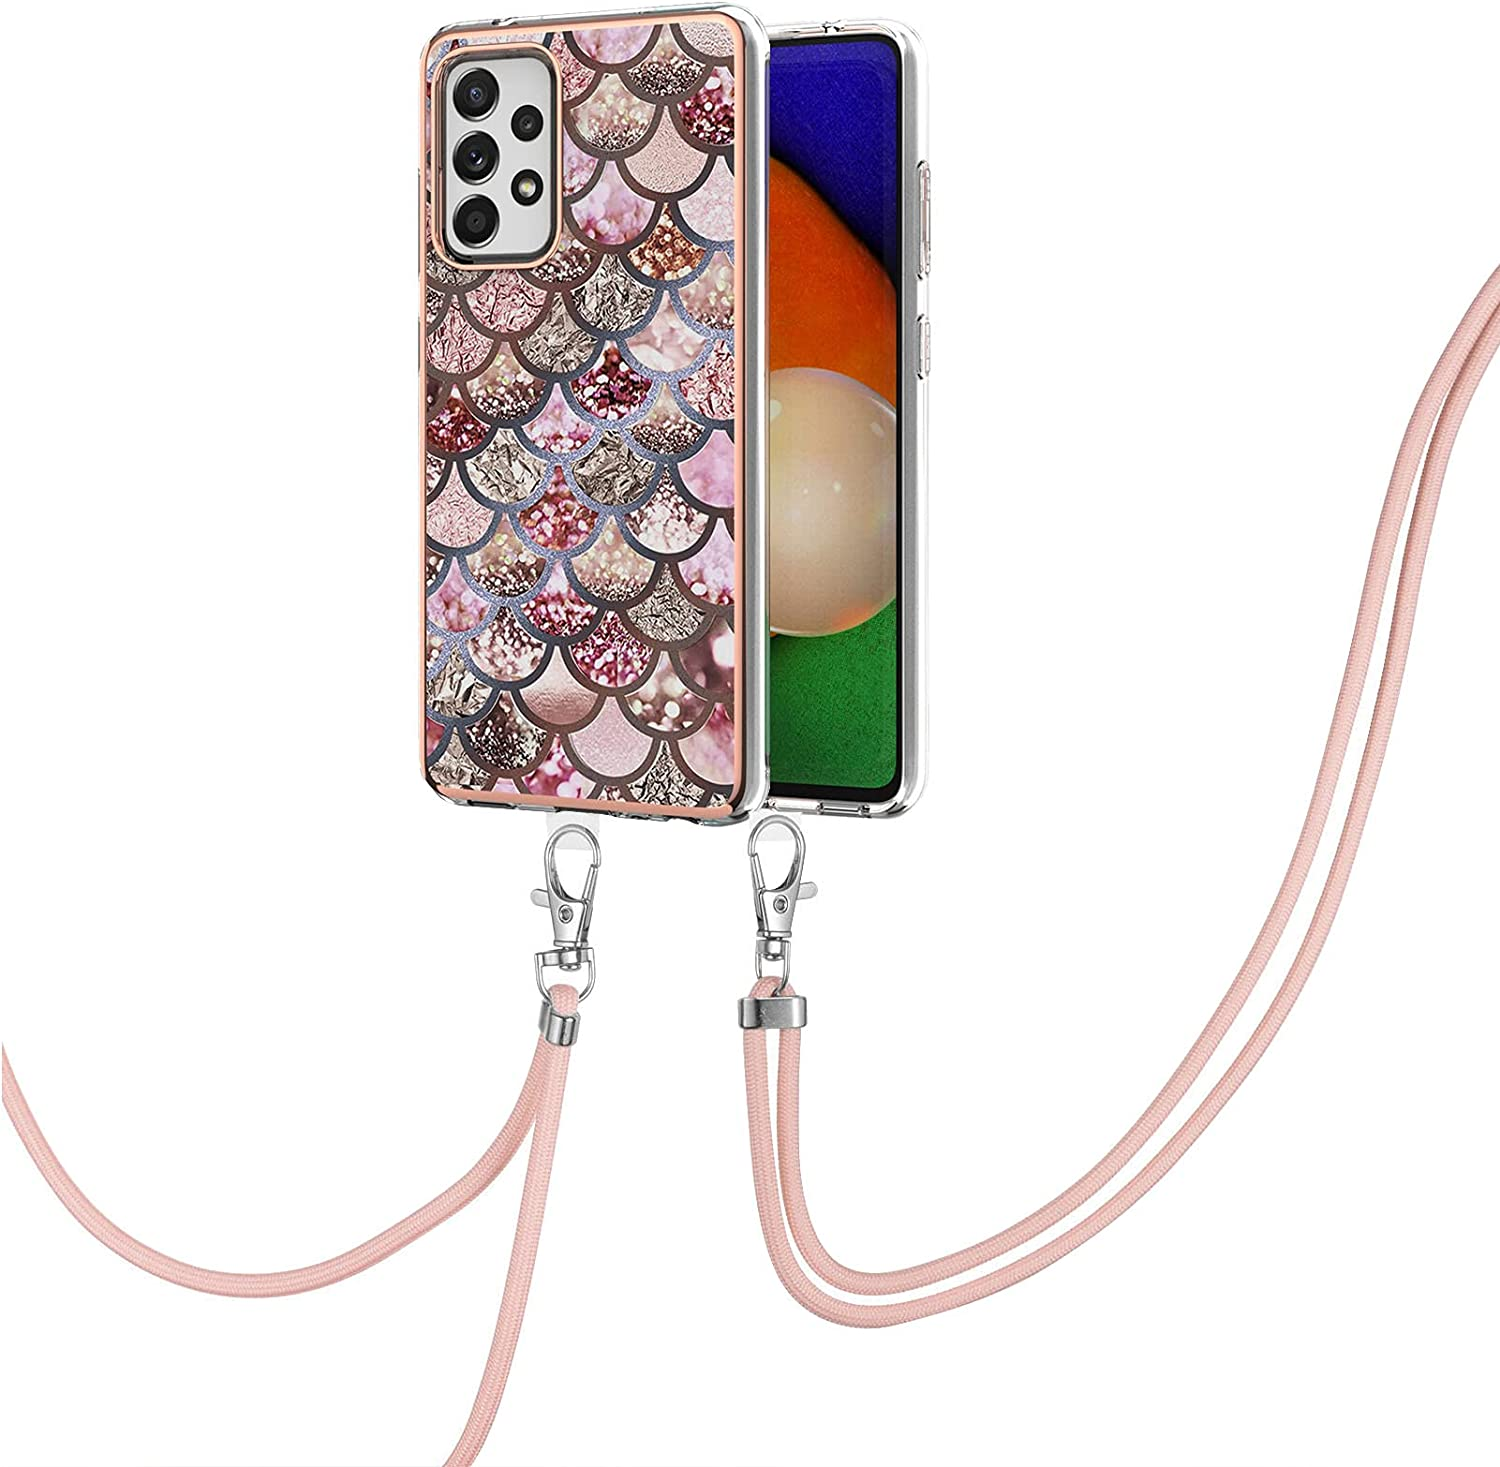 Eyilin Marble Pattern Lanyard Case for Samsung Galaxy A52 5G, Shockproof Bronzing Frame Cover with Adjustable Crossbody Neck Strap Soft Silicone Gel TPU Clear Bumper Thin Protective Back Case